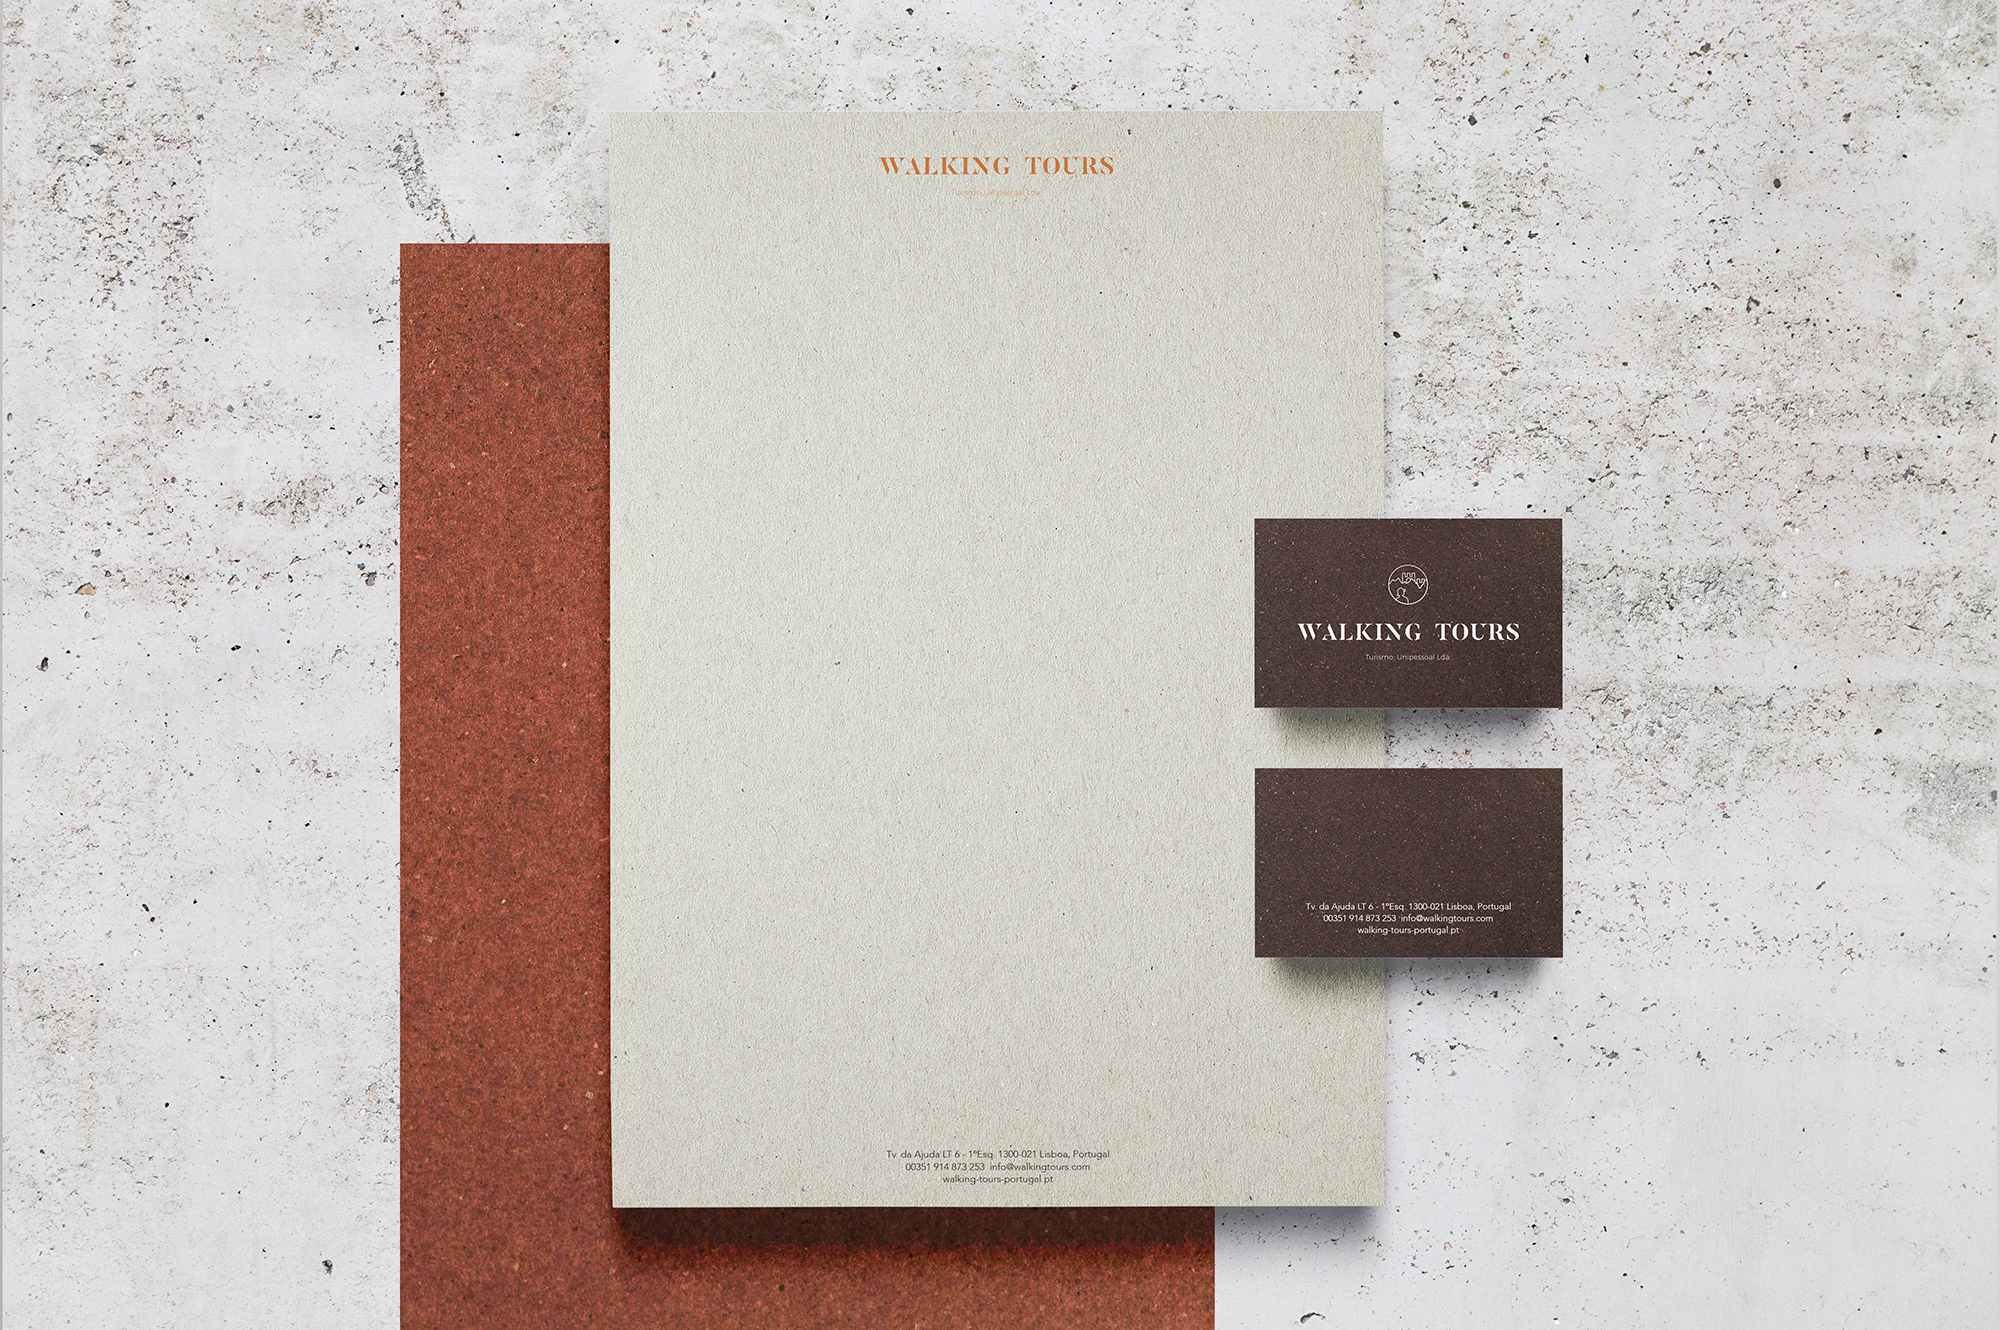 WALKING_STATIONARY_MOCKUP_01